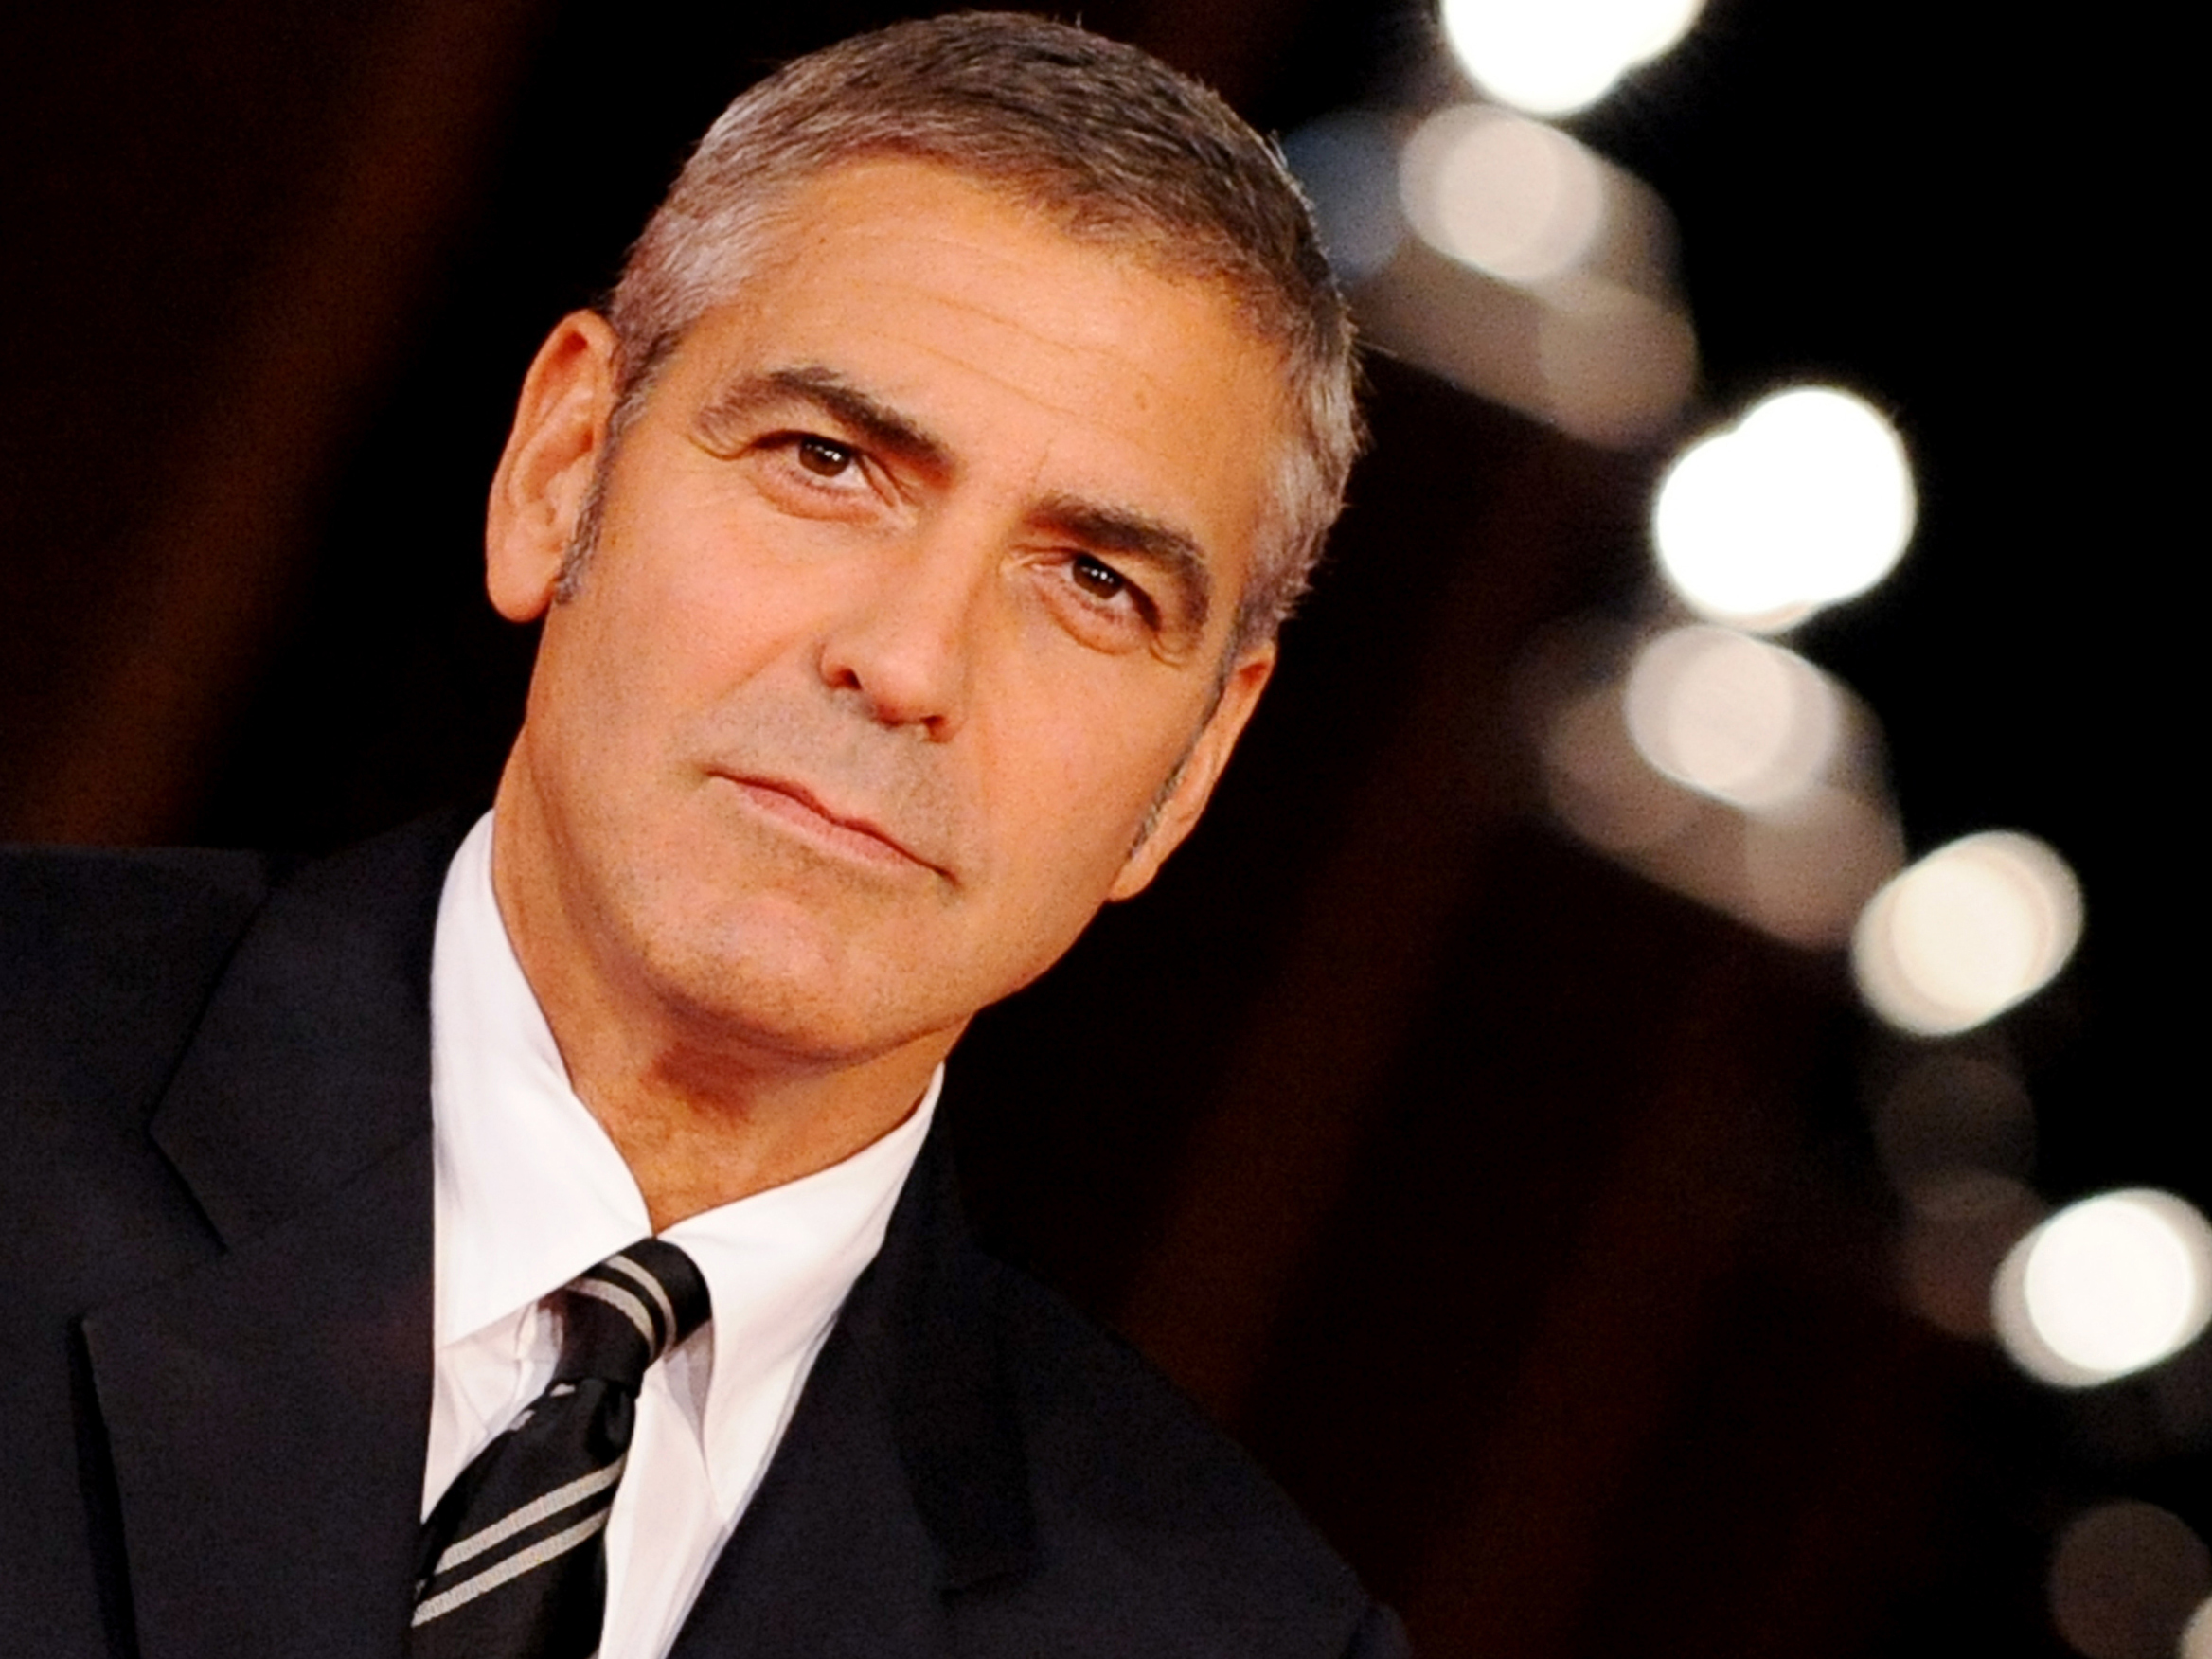 George Clooney Hd Desktop